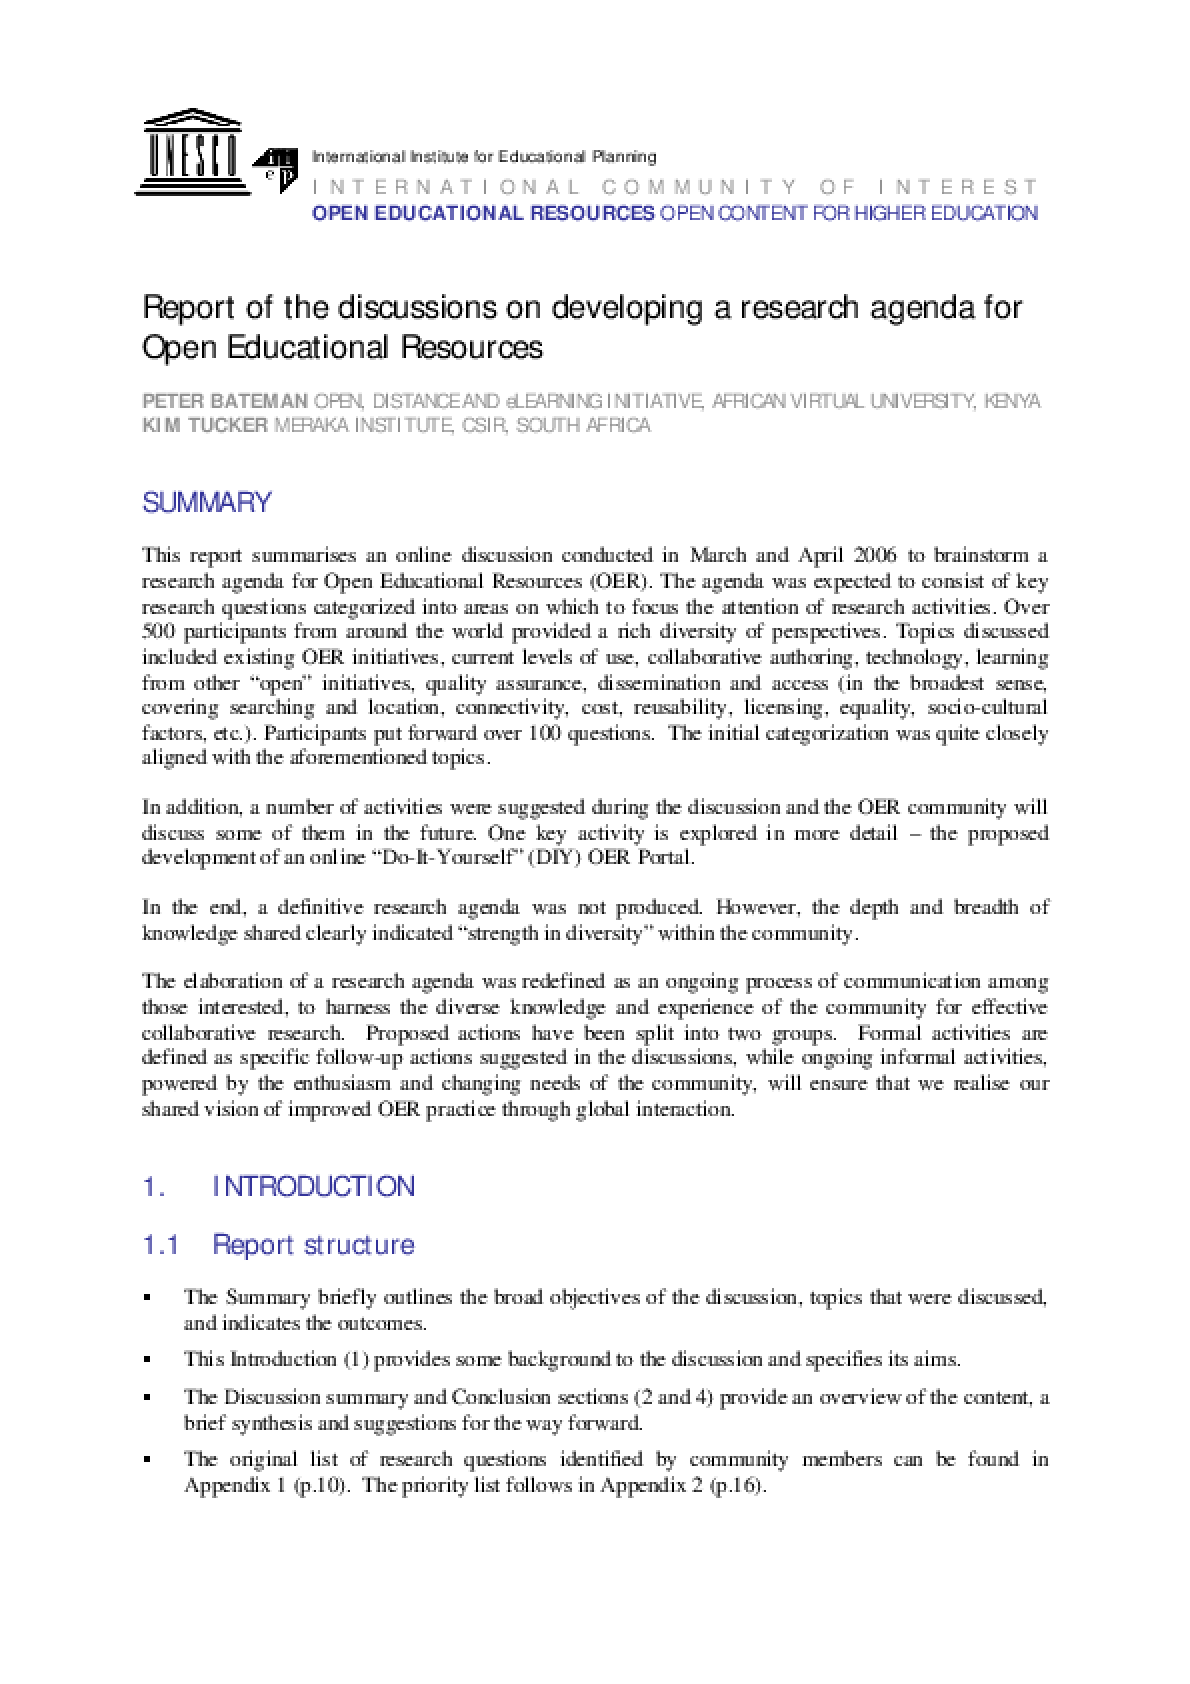 A Research Agenda for OER: discussion highlights